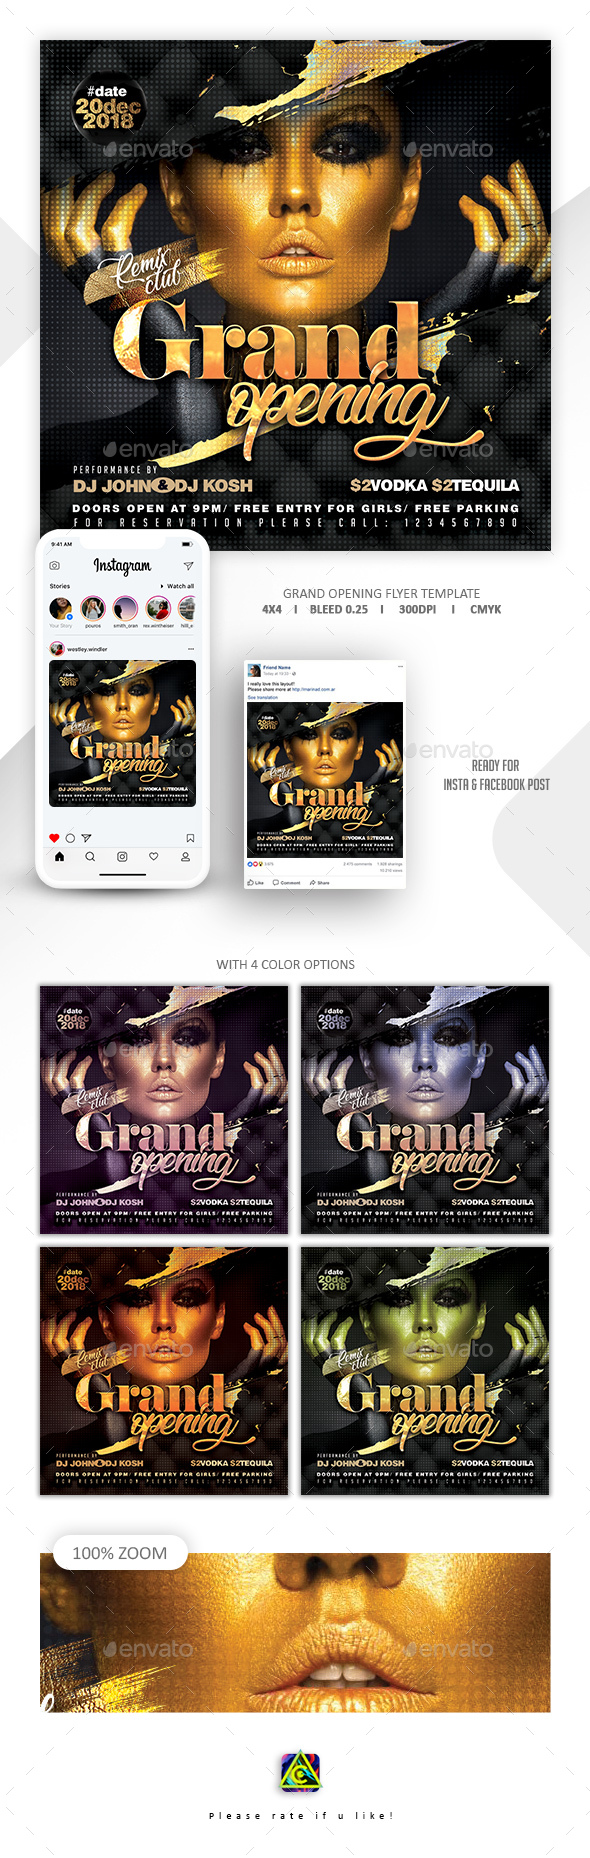 Grand Opening Party Flyer - Clubs & Parties Events